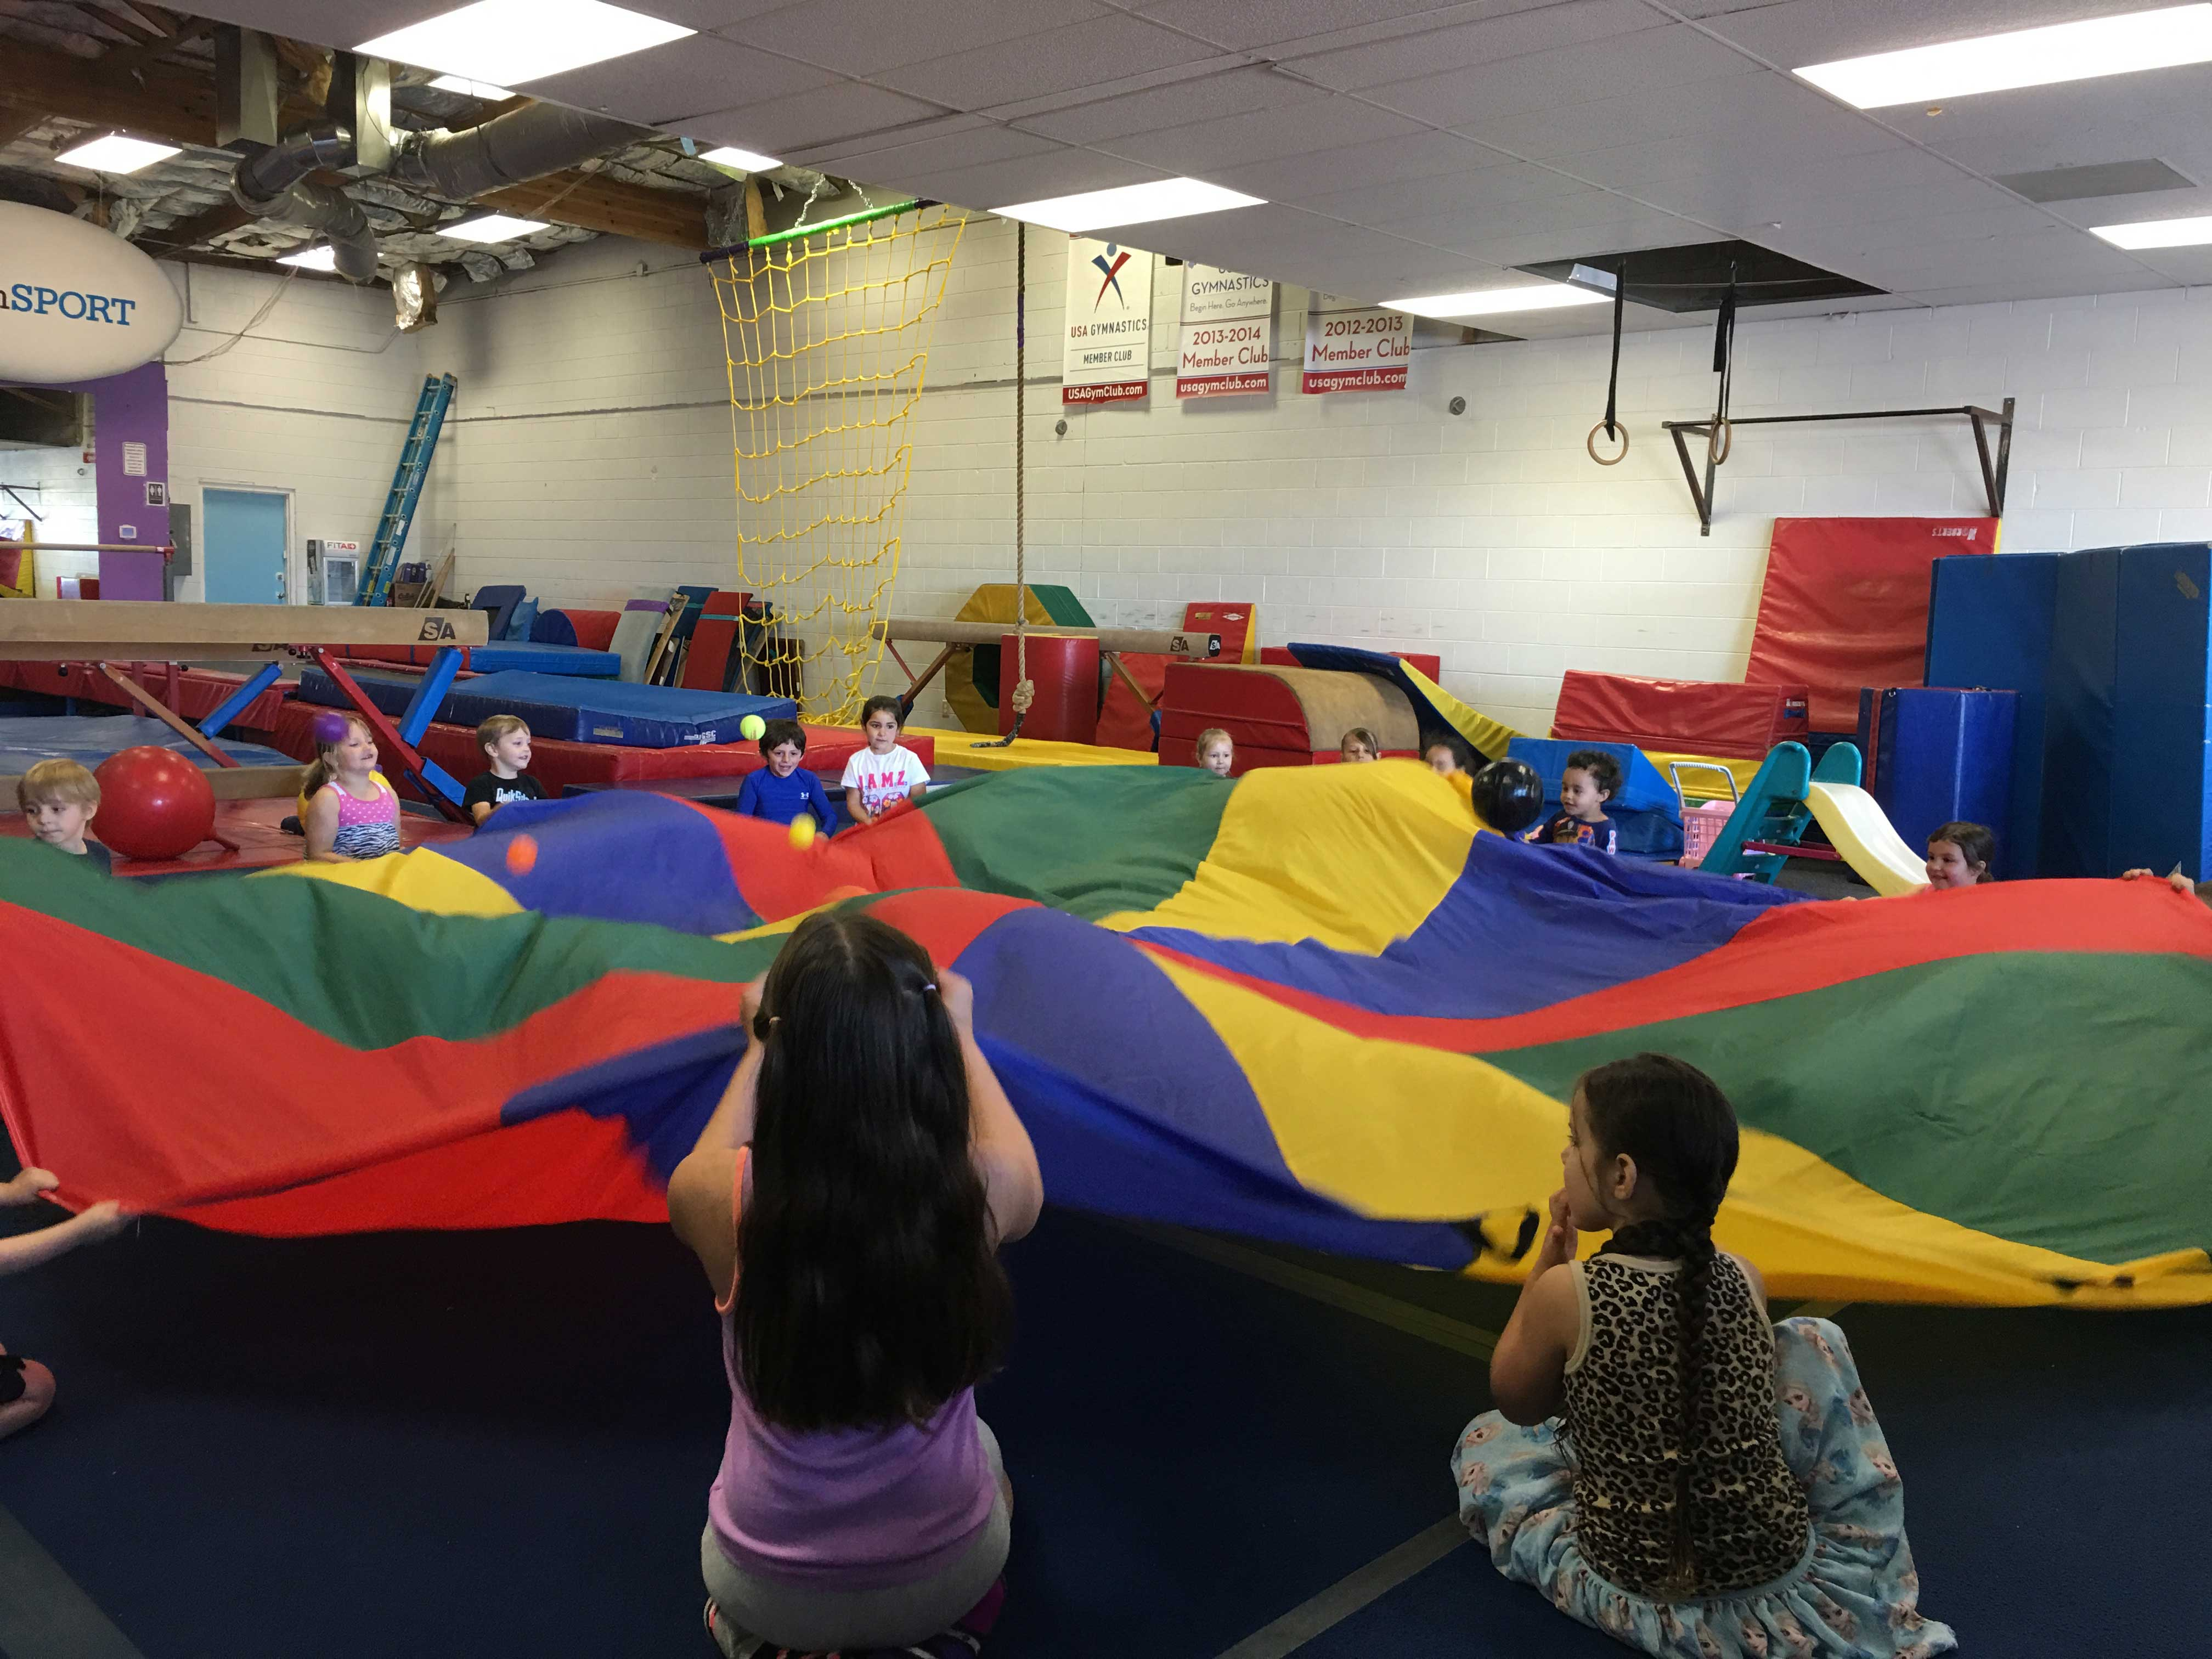 Youth Party at HealthSPORT Gymnastics in Humboldt County